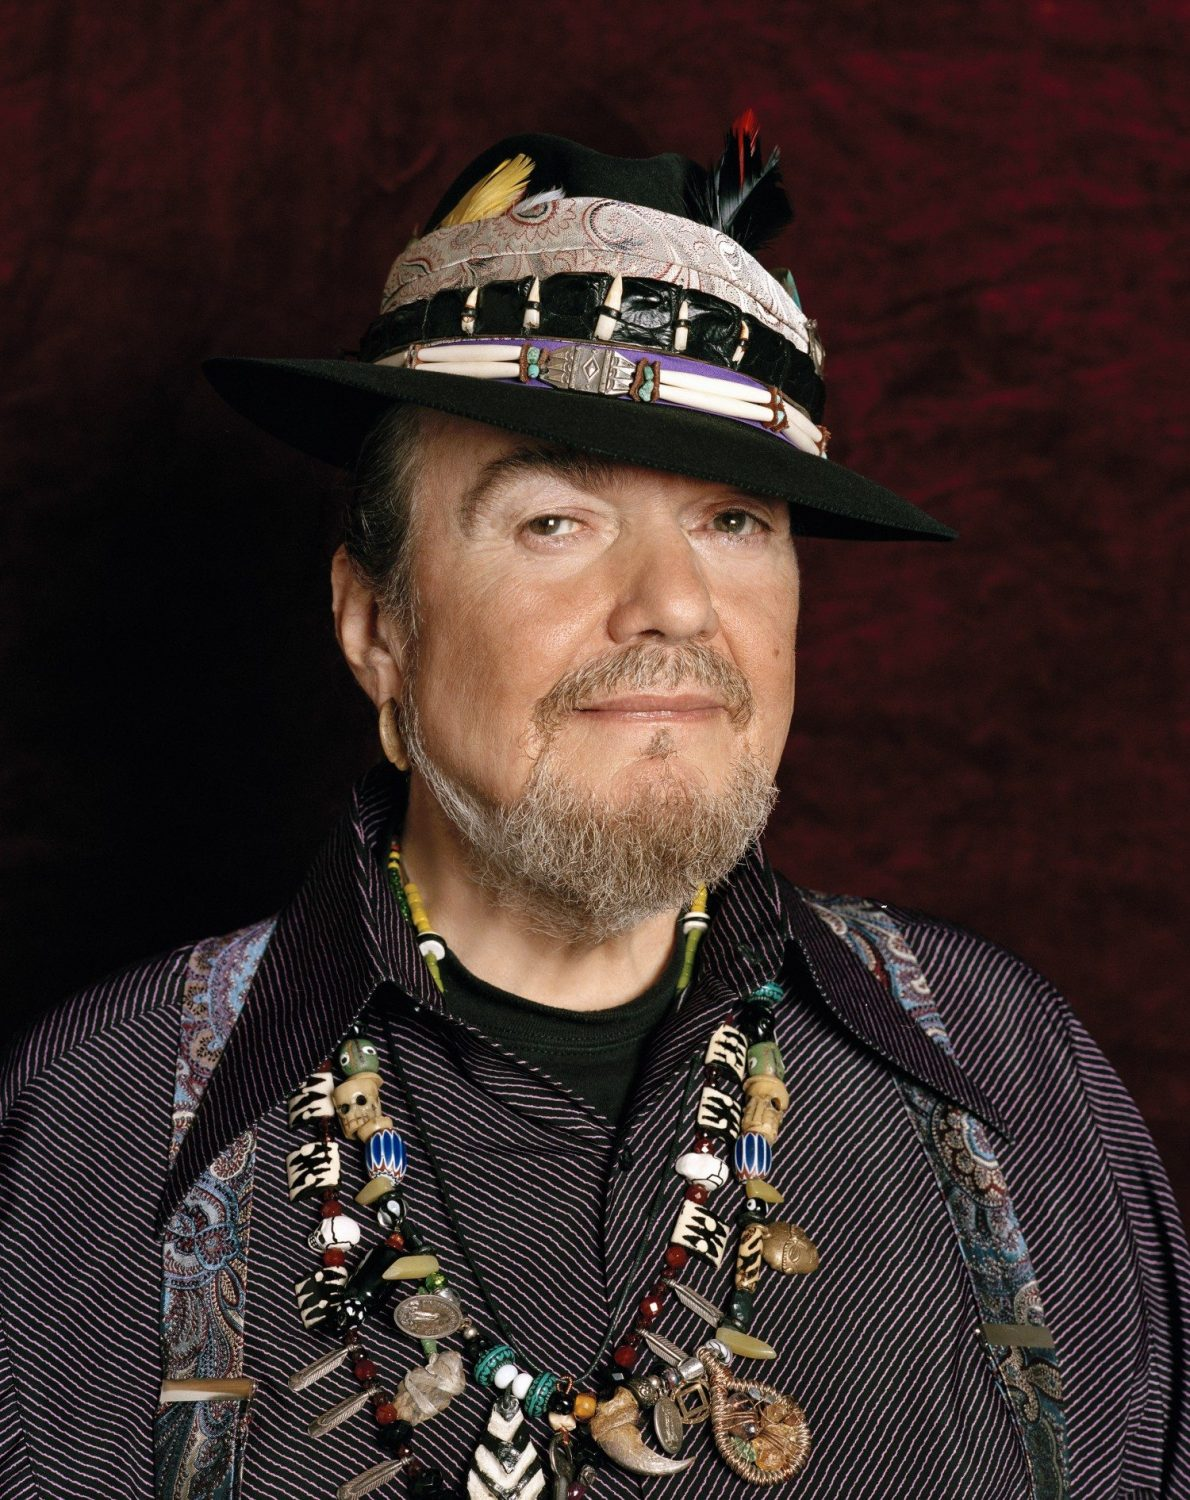 Dr. John to headline Louis Armstrong's Wonderful World Festival on Jul. 16, set for other NYC appearances